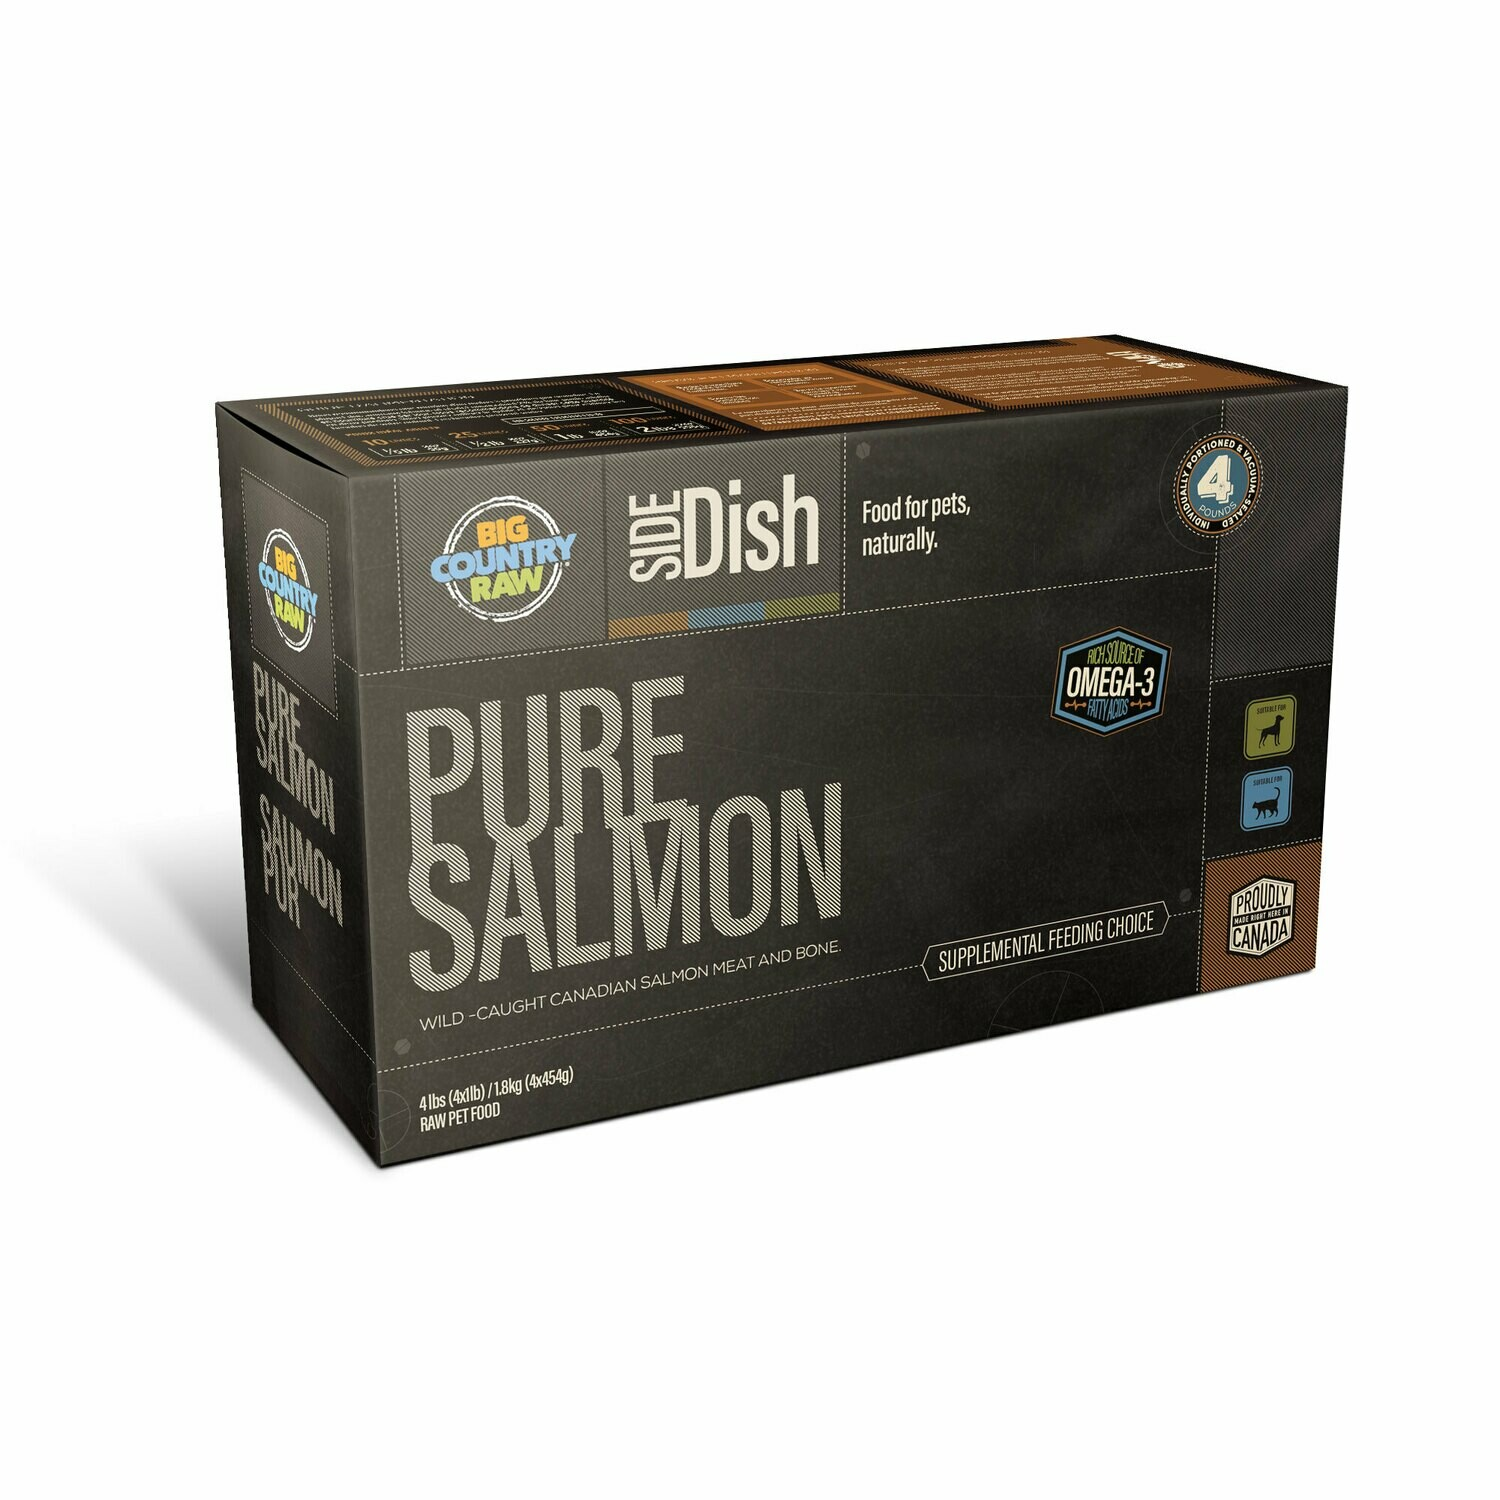 PURE SALMON 4LB - Meat, Organ, Bone Only